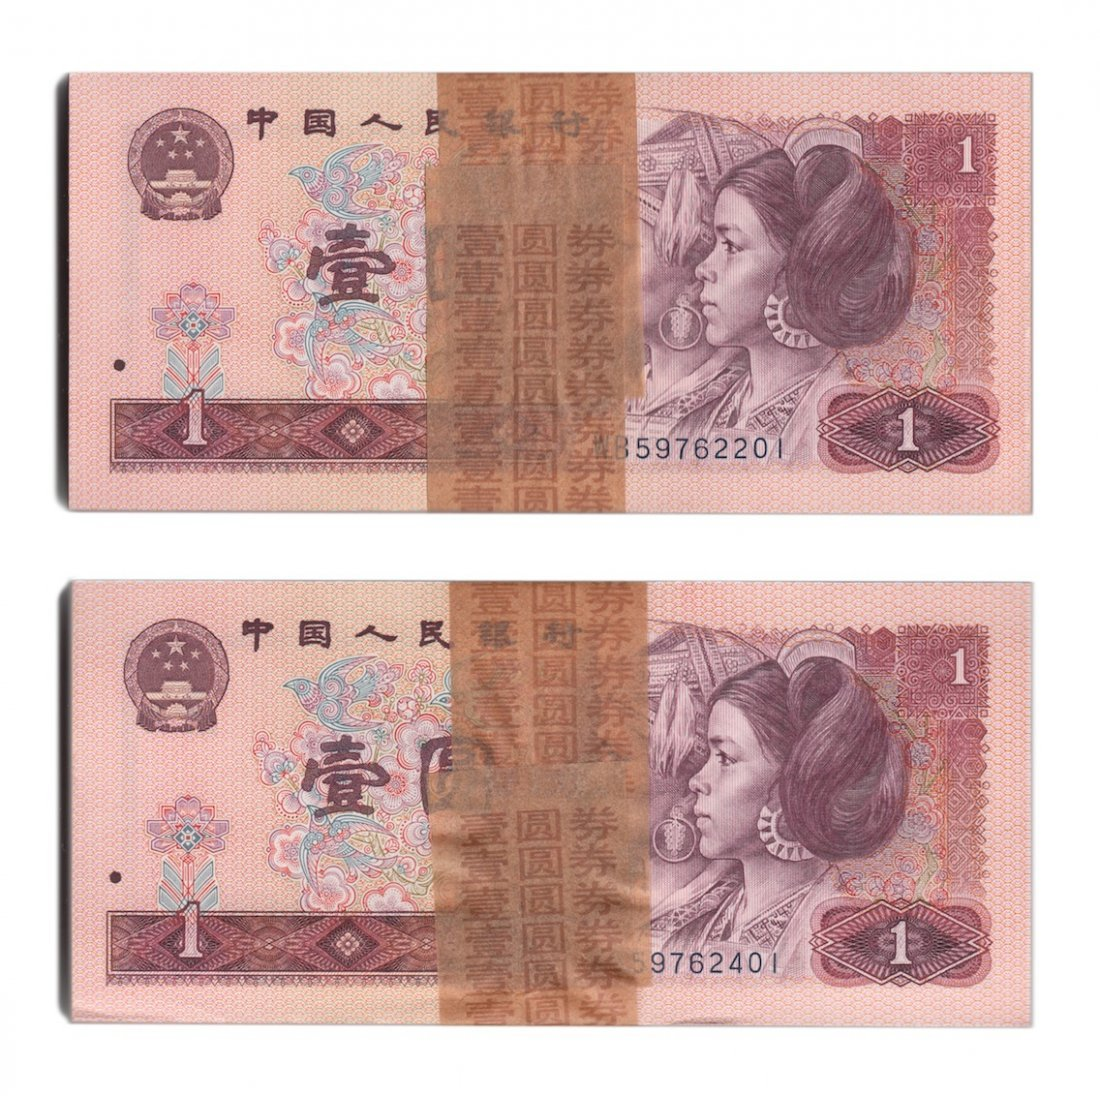 22: Banknote